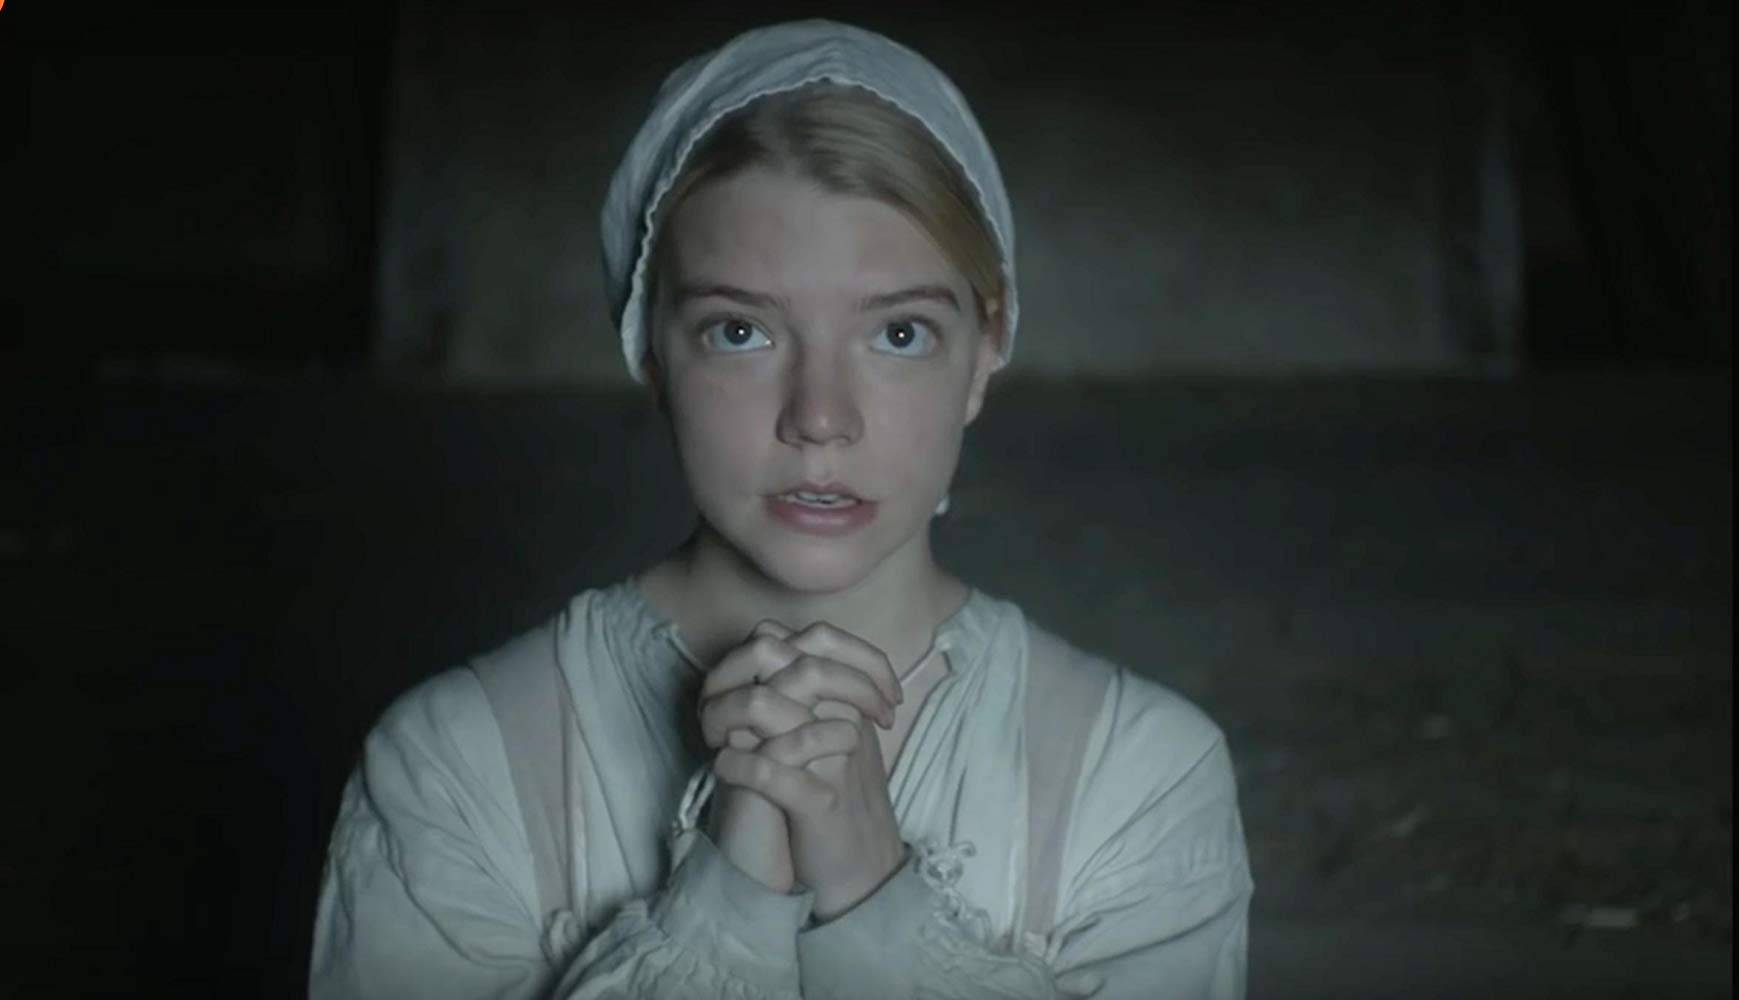 [News] THE WITCH Arrives on 4K Ultra HD Combo Pack April 23